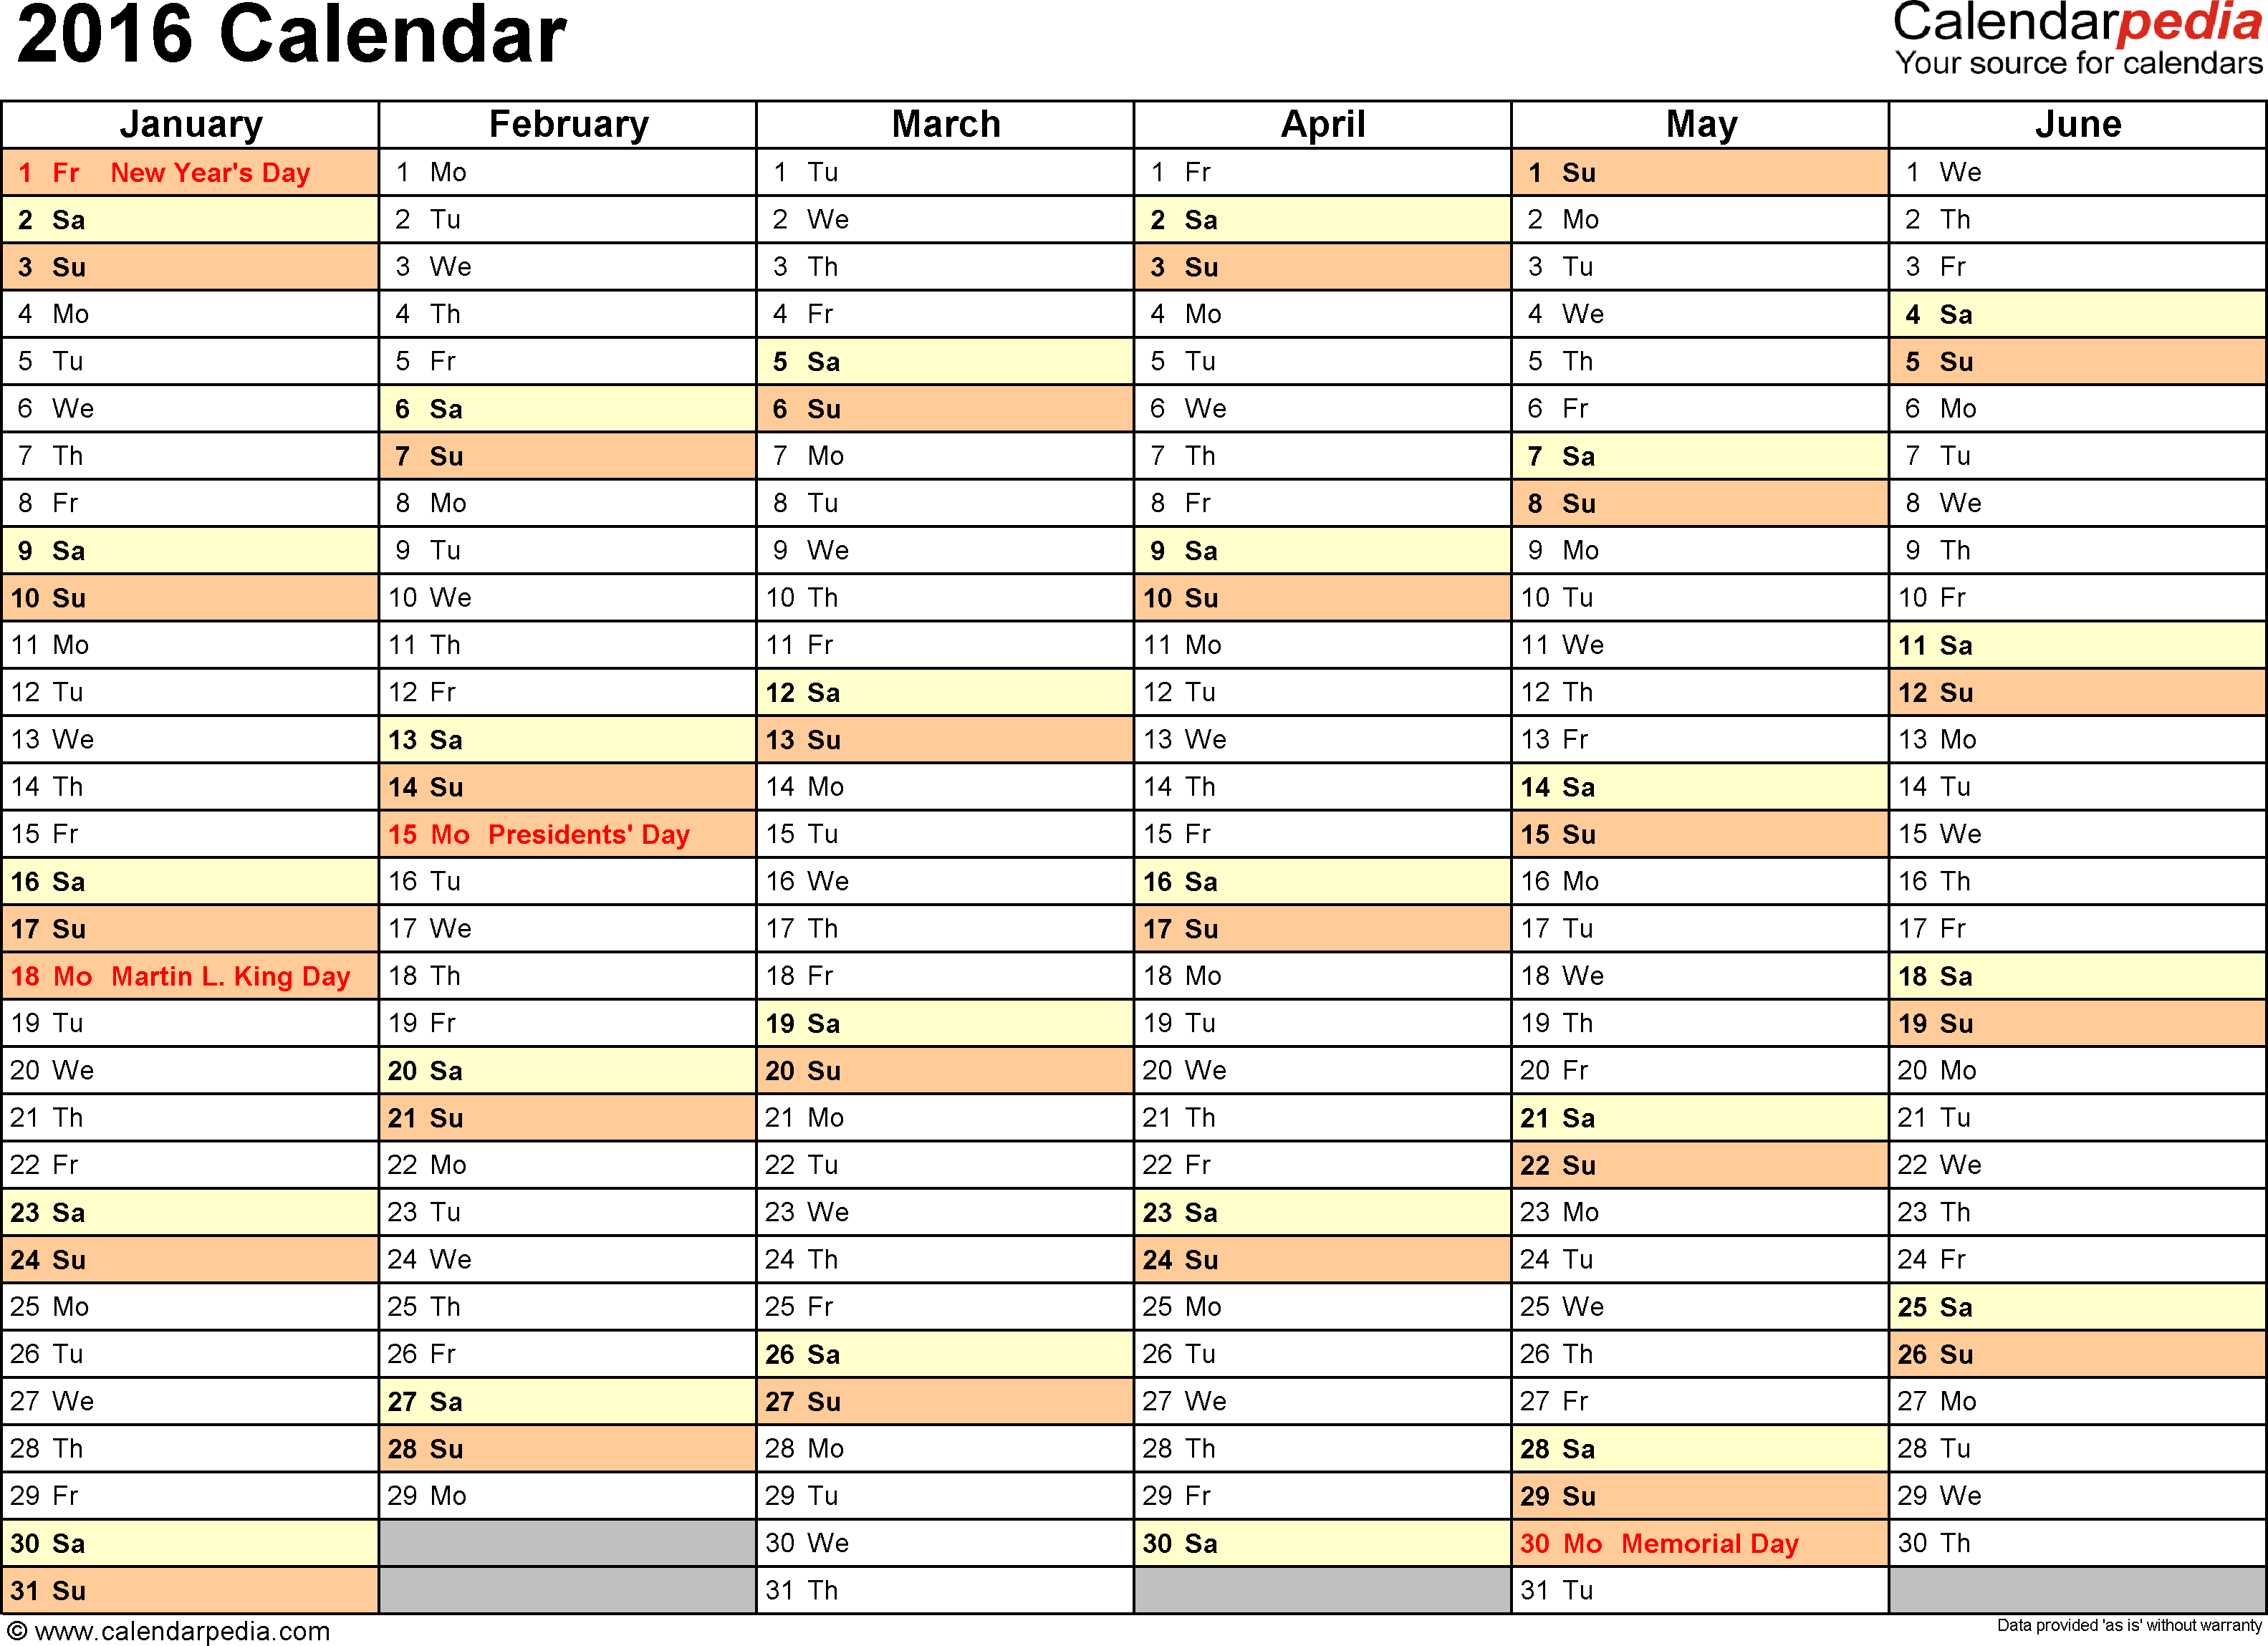 Ediblewildsus  Marvelous  Calendar  Download  Free Printable Excel Templates Xls With Extraordinary Template   Calendar For Excel Months Horizontally  Pages Landscape Orientation With Nice Remove Zeros In Excel Also Excel Writer In Addition Column Headers In Excel And Engineering With Excel As Well As How To Create A Sparkline In Excel Additionally Minus Function In Excel From Calendarpediacom With Ediblewildsus  Extraordinary  Calendar  Download  Free Printable Excel Templates Xls With Nice Template   Calendar For Excel Months Horizontally  Pages Landscape Orientation And Marvelous Remove Zeros In Excel Also Excel Writer In Addition Column Headers In Excel From Calendarpediacom